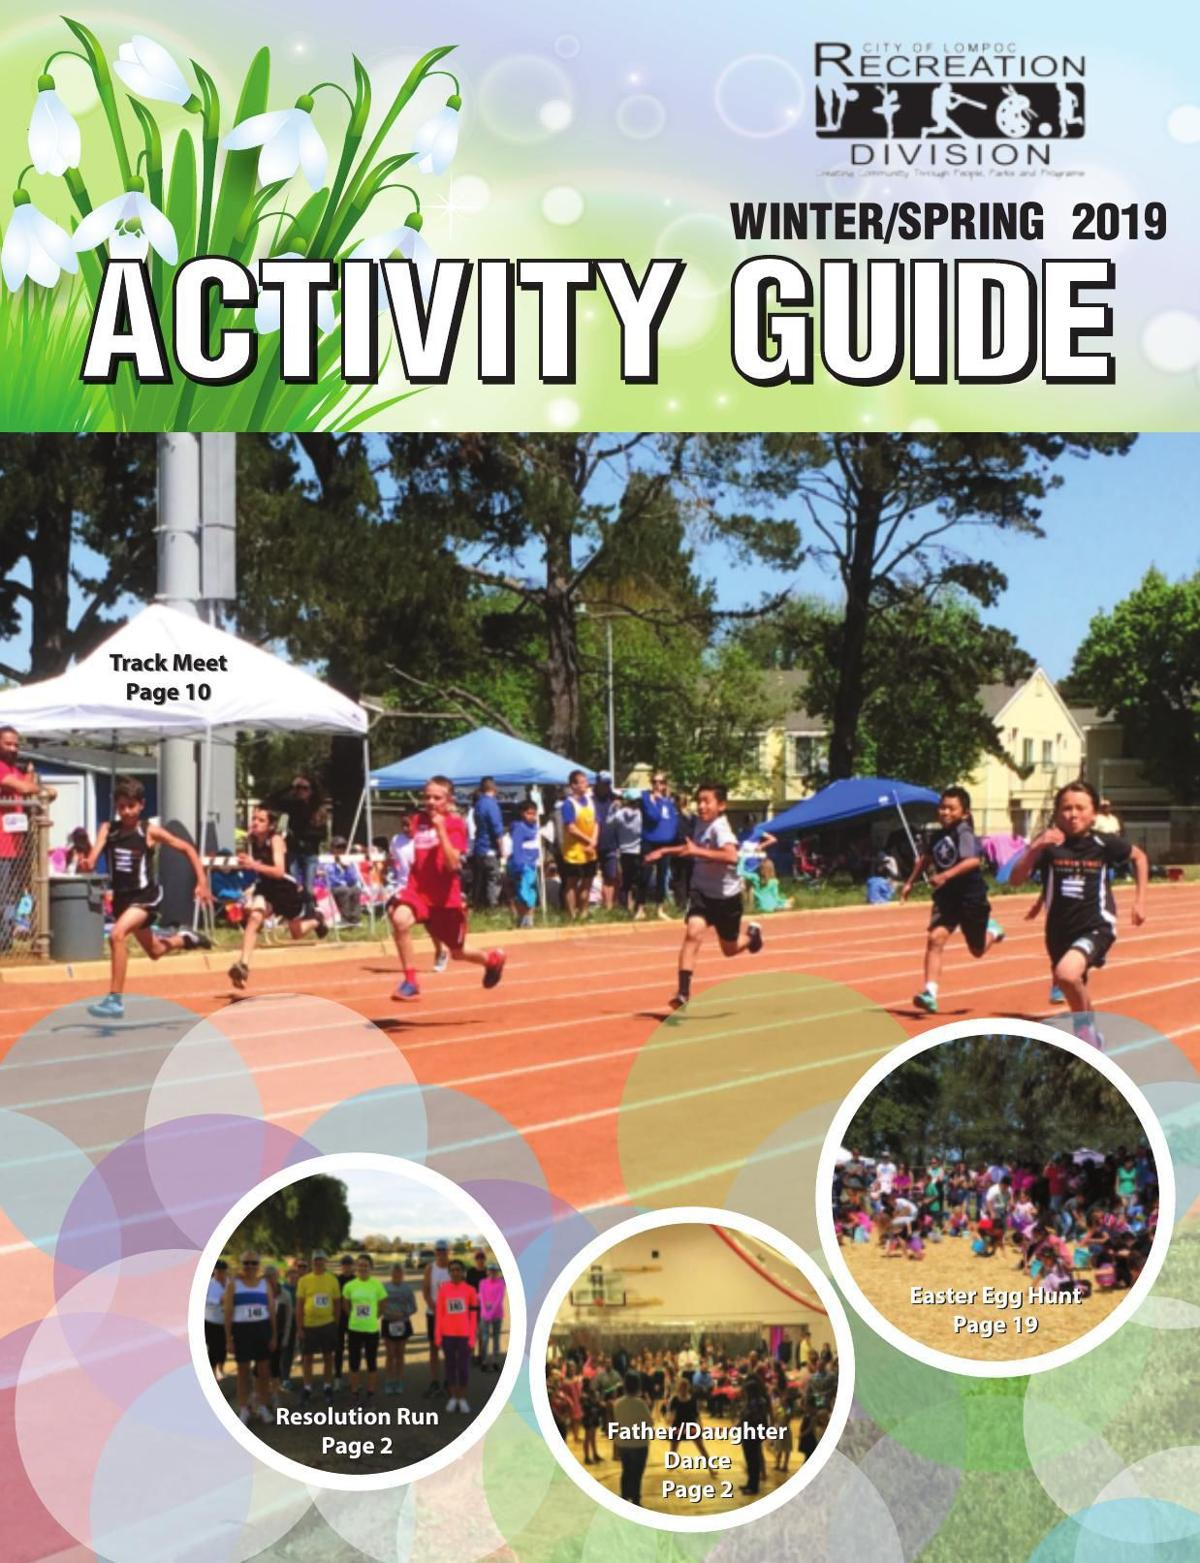 City of Lompoc Recreation Division Winter/Spring Activity Guide